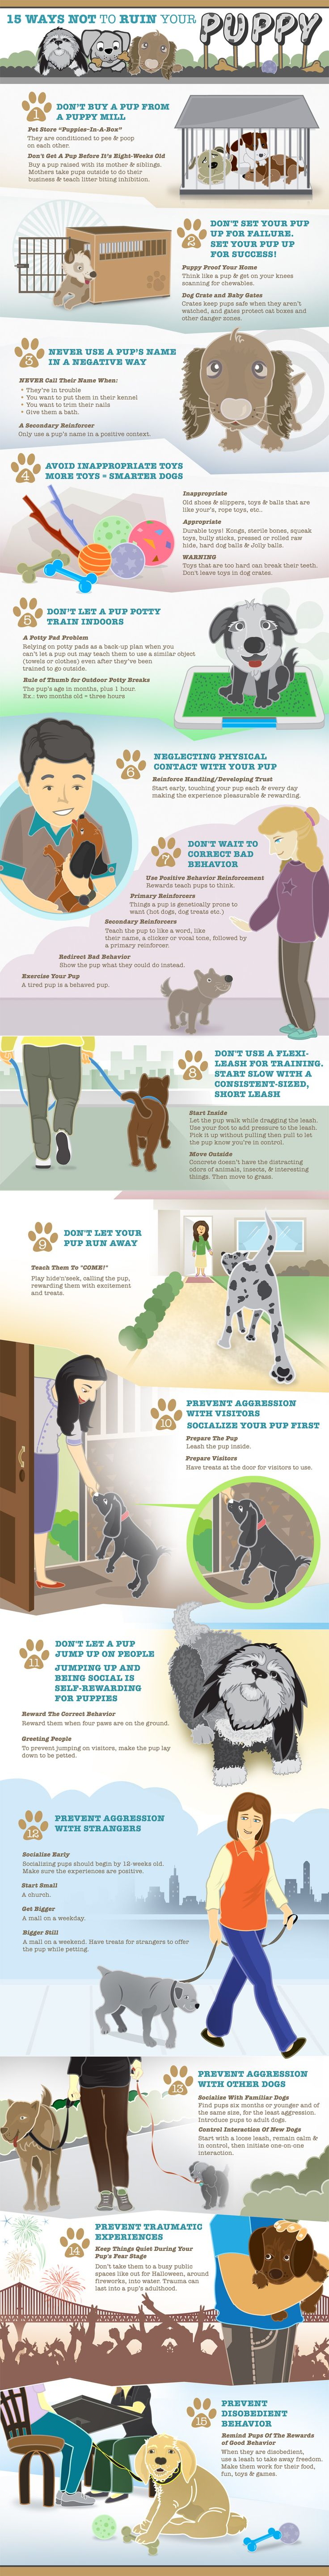 Puppy Training Tips-Really wish I could hand this out to all the idiots who are too lazy to do their homework before bringing home a puppy! Just because it's cute doesn't mean it will work in your home!